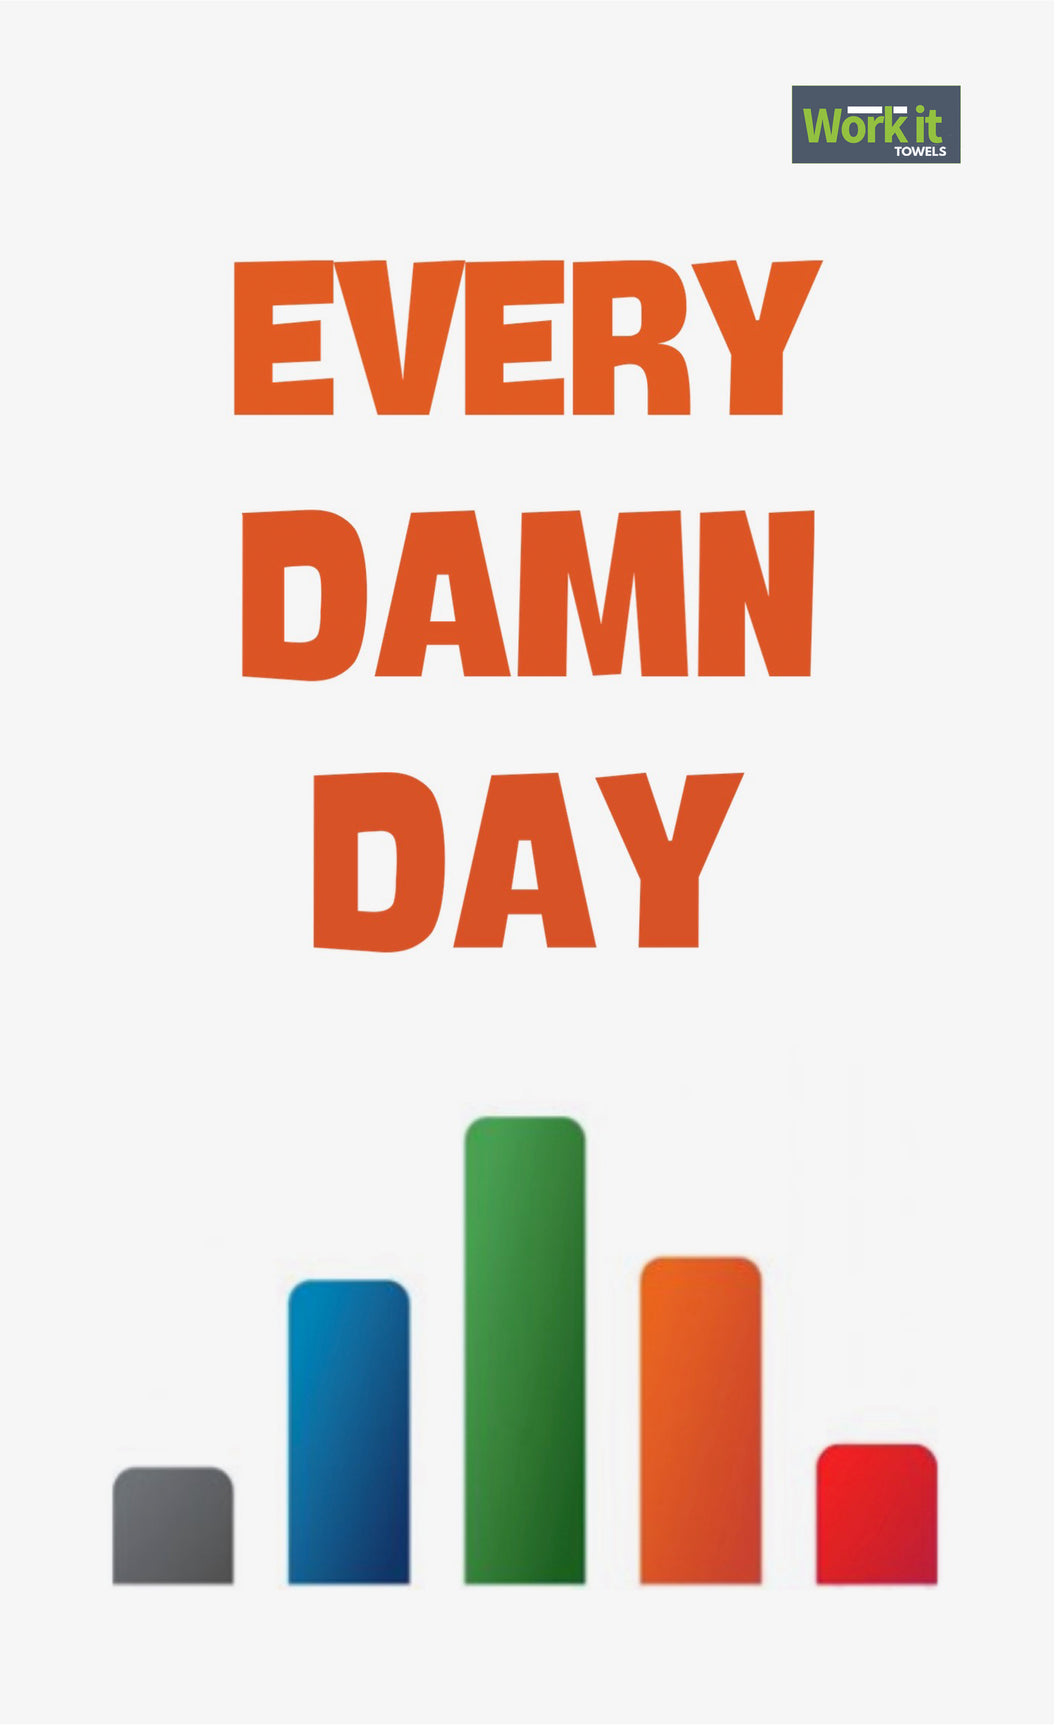 Every Damn Day - work it towels